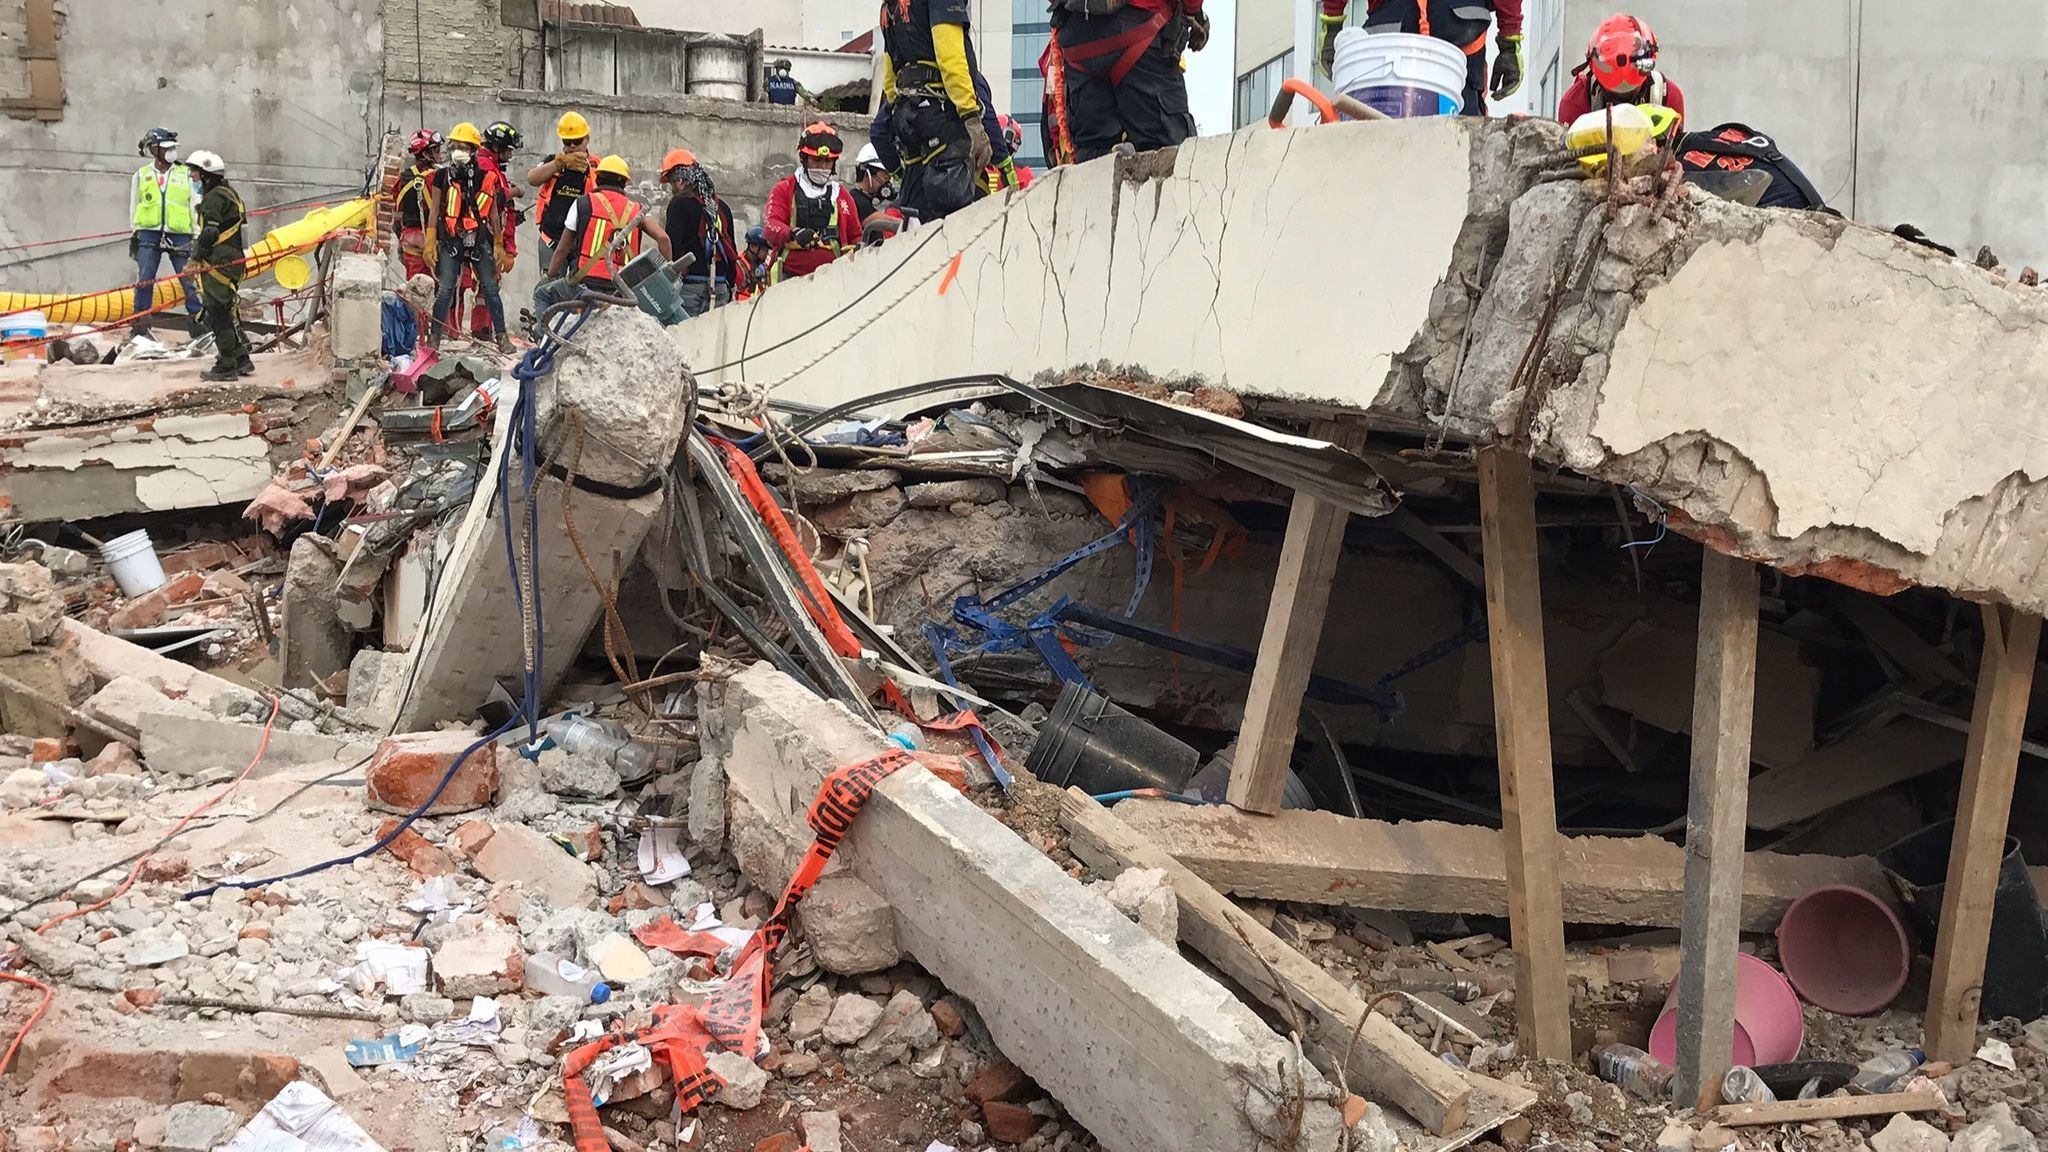 A shattered concrete column or beam from roof of the office building at Avenida Alvaro Obregon 286, in the Condesa neighborhood of Mexico City.